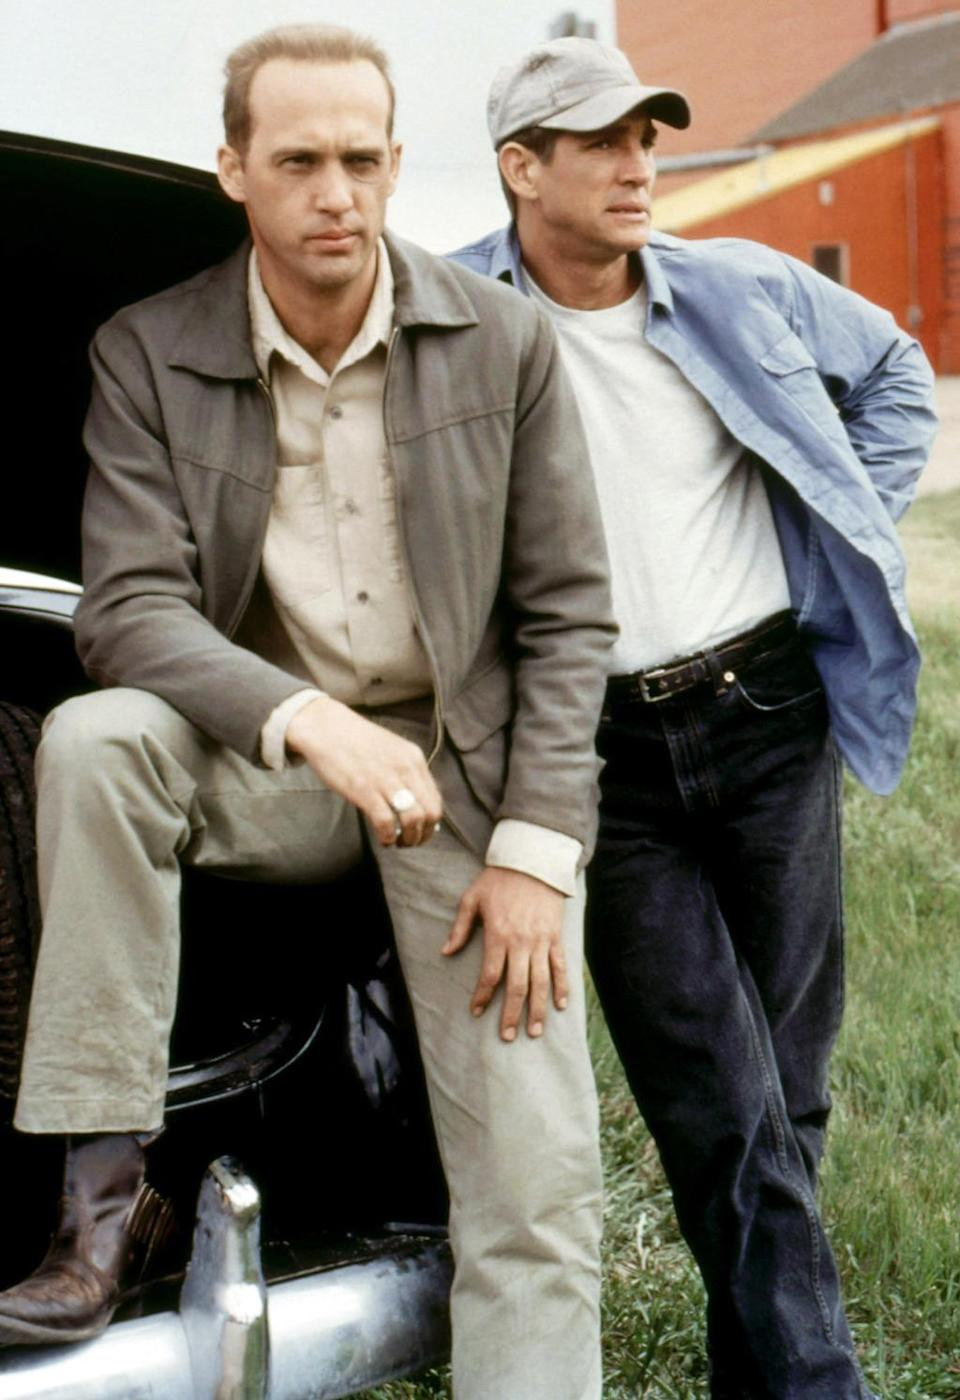 <p><b>Aired:</b> November 24, 1996 on CBS<br><b>Stars:</b> Eric Roberts, Anthony Edwards, and Ryan Reynolds<br><br><b>Ripped from the headlines about:</b> The 1959 murders of the Kansas Clutter family by Perry Smith (Roberts) and Dick Hickock Edwards), as detailed in Truman Capote's classic book. Reynolds plays Bobby Rupp, the boyfriend of murdered Clutter daughter Nancy, and the last person to see the family alive. The TV movie, which followed the Oscar-nominated 1967 big-screen film, was nominated for an Outstanding Miniseries Emmy.<br><br><i>(Credit: Everett Collection)</i> </p>